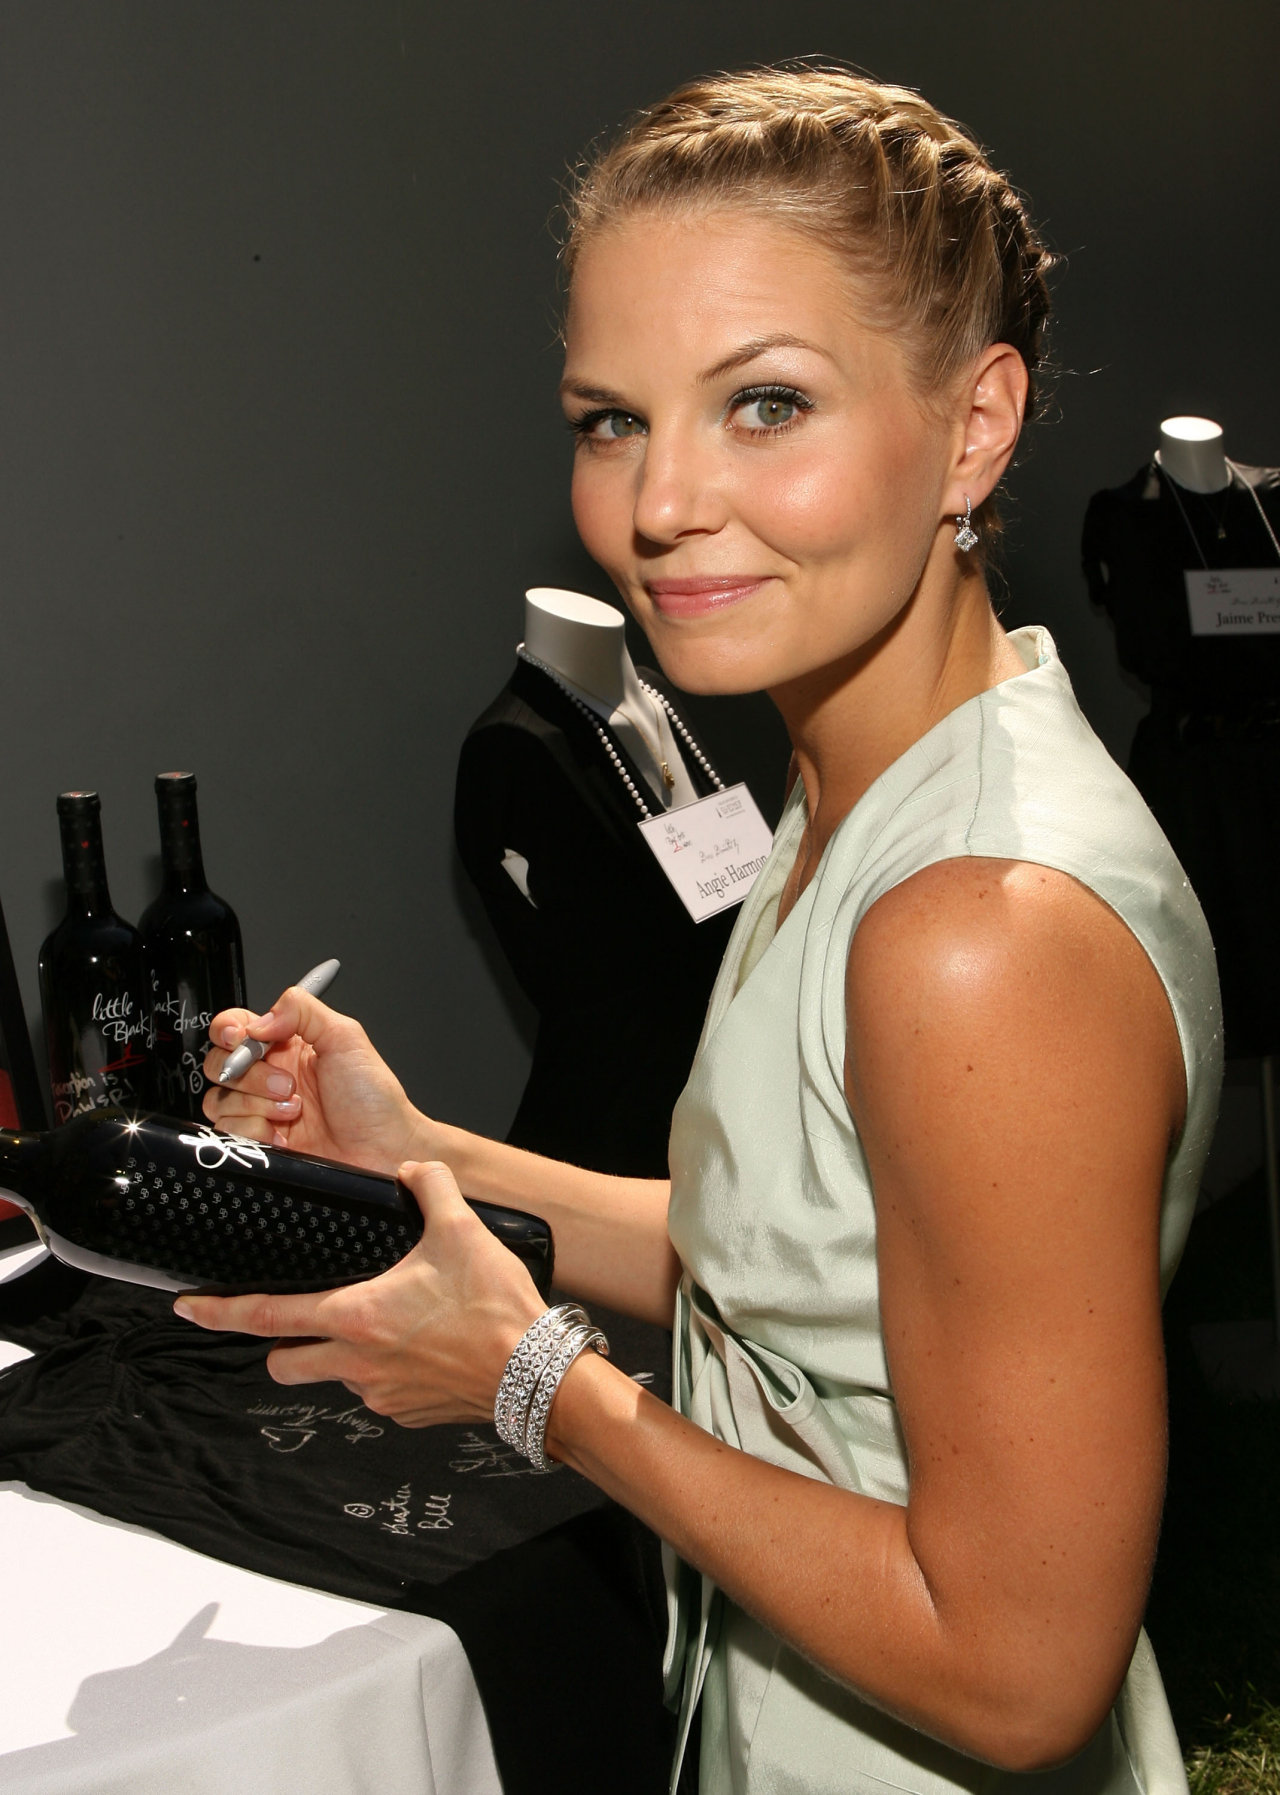 Photo Jennifer Morrison - Wallpapers with a celebrity ...: http://www.ua-dreams.com/celebrity/jennifer-morrison/asgp.html